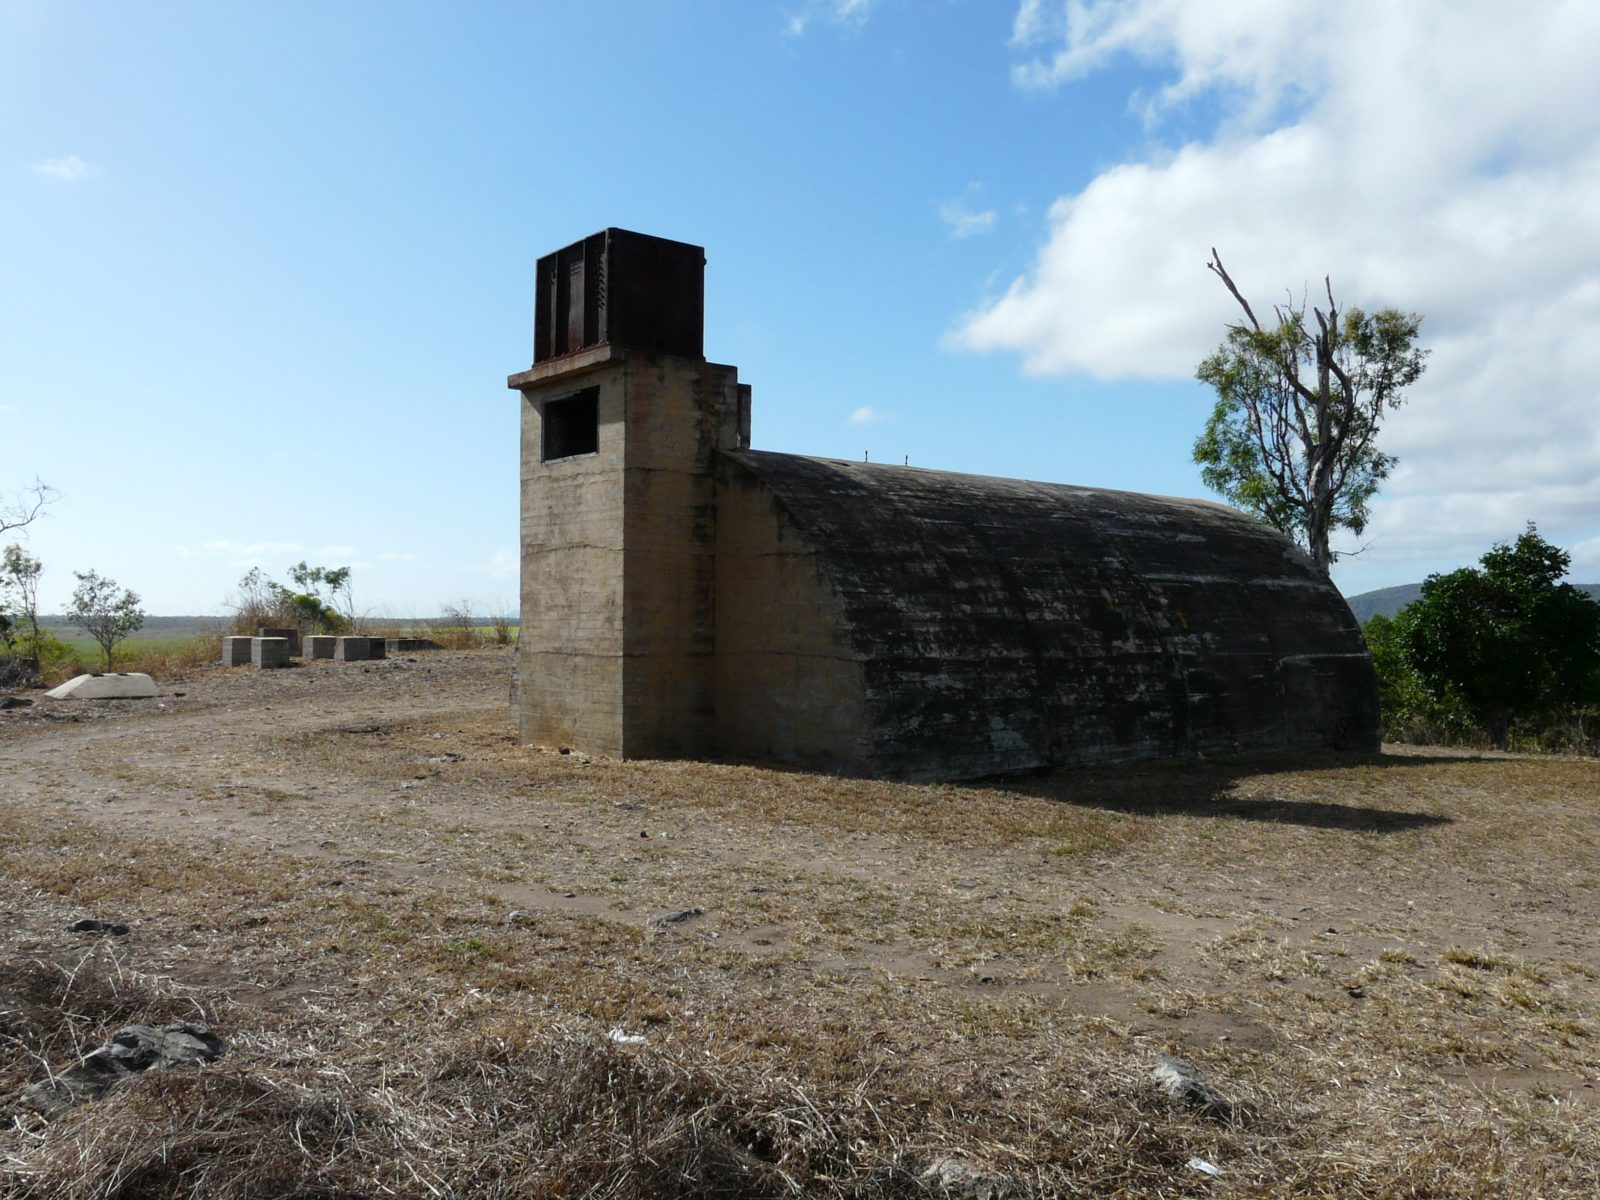 The reinforced concrete igloos remaining from the World War II Radar Station at Charlie's Hill are listed in the Queensland Heritage Register because of the site's historical and military significance.